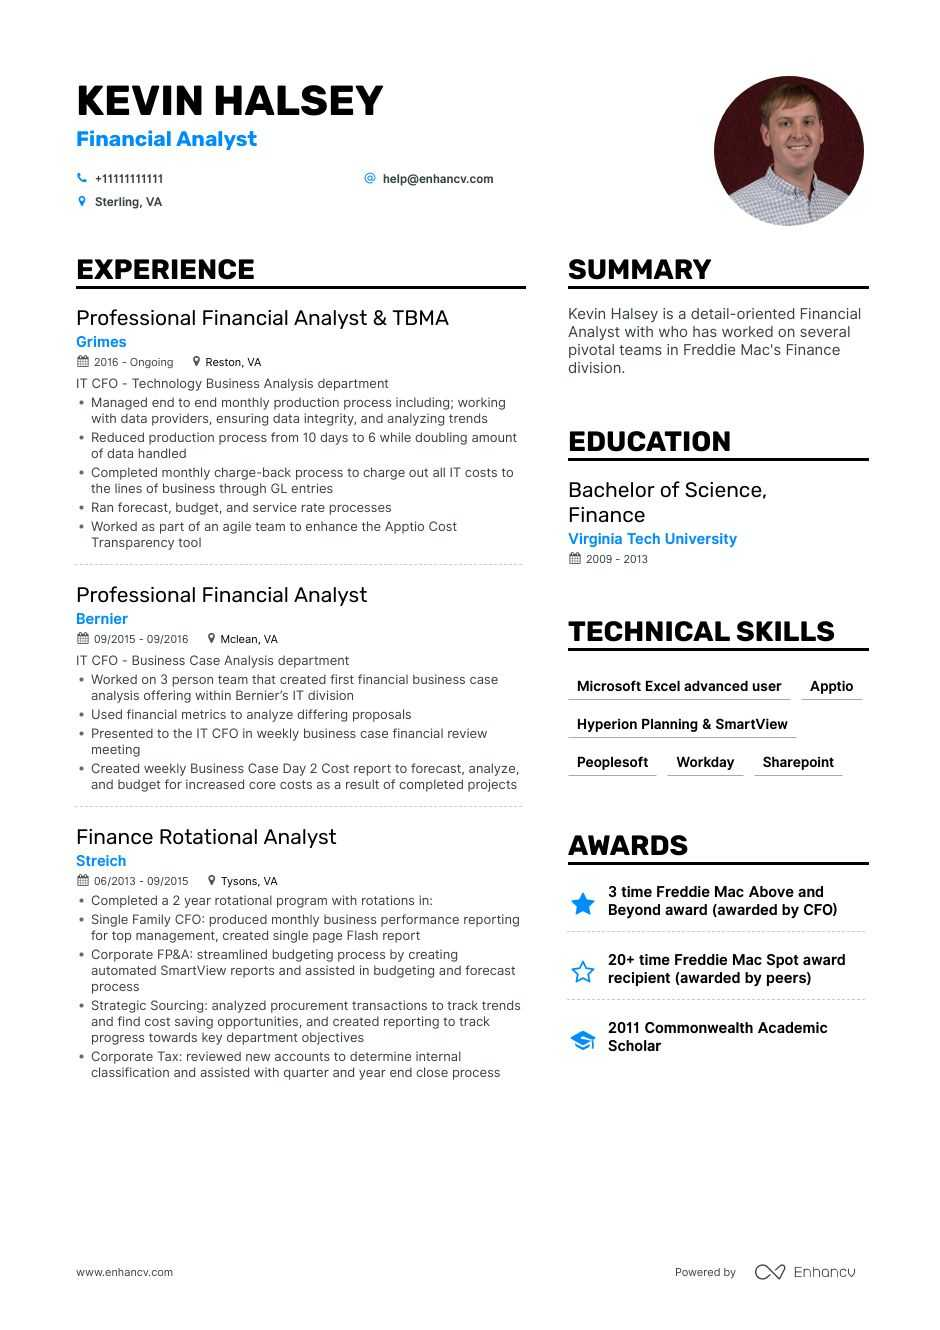 financial analyst resume example for enhancv analysis skills find format very basic Resume Financial Analysis Skills Resume